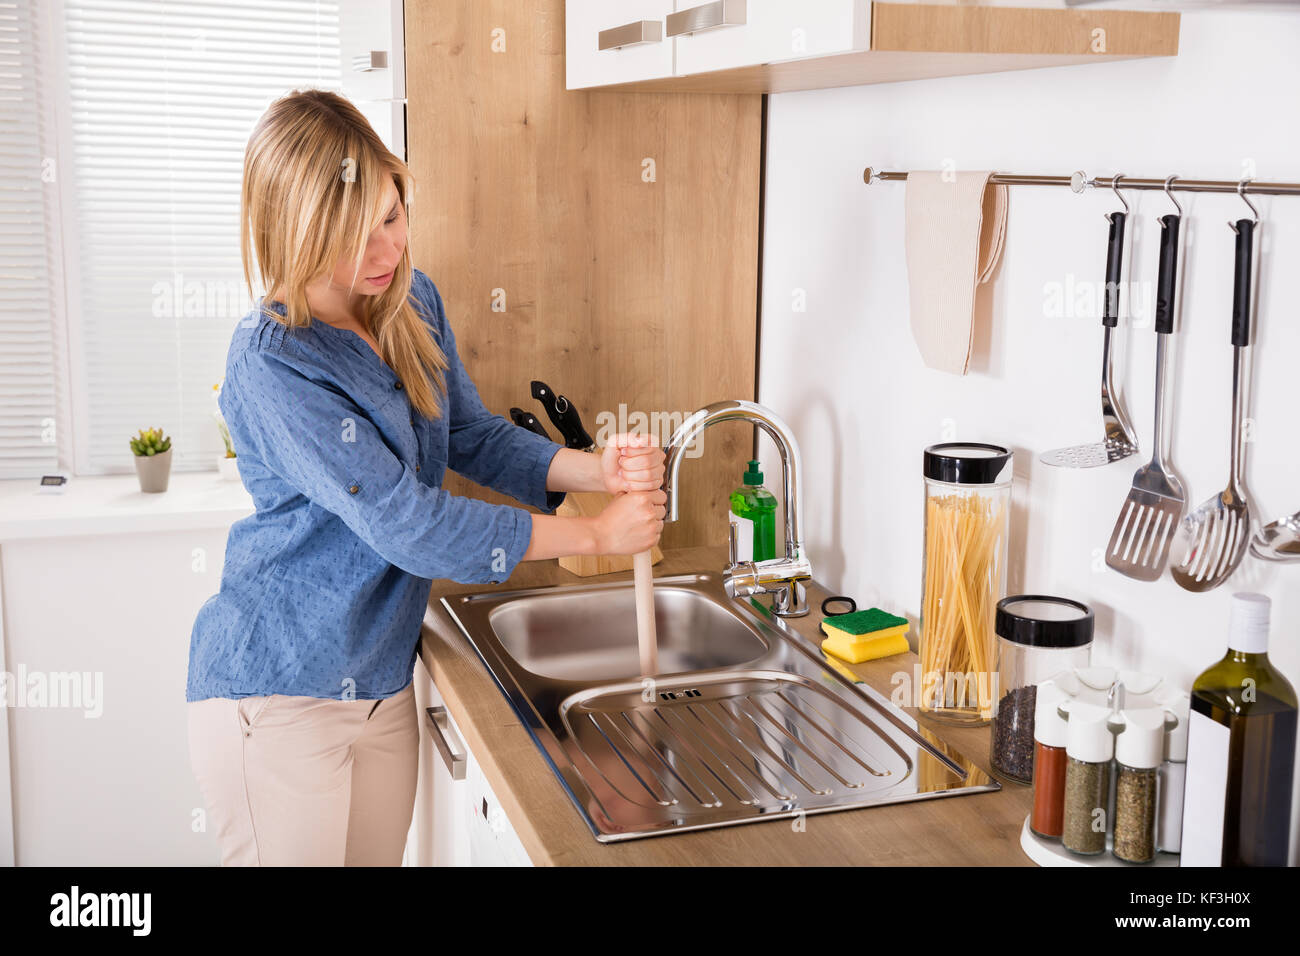 Young Woman Using Plunger In Blocked Kitchen Sink To Unclog Drain At on unclog sinks both kitchen, unclog tub drain with bleach, unclog pipes, unclog my bathroom sink, unclog sink drain, toilet plunger,